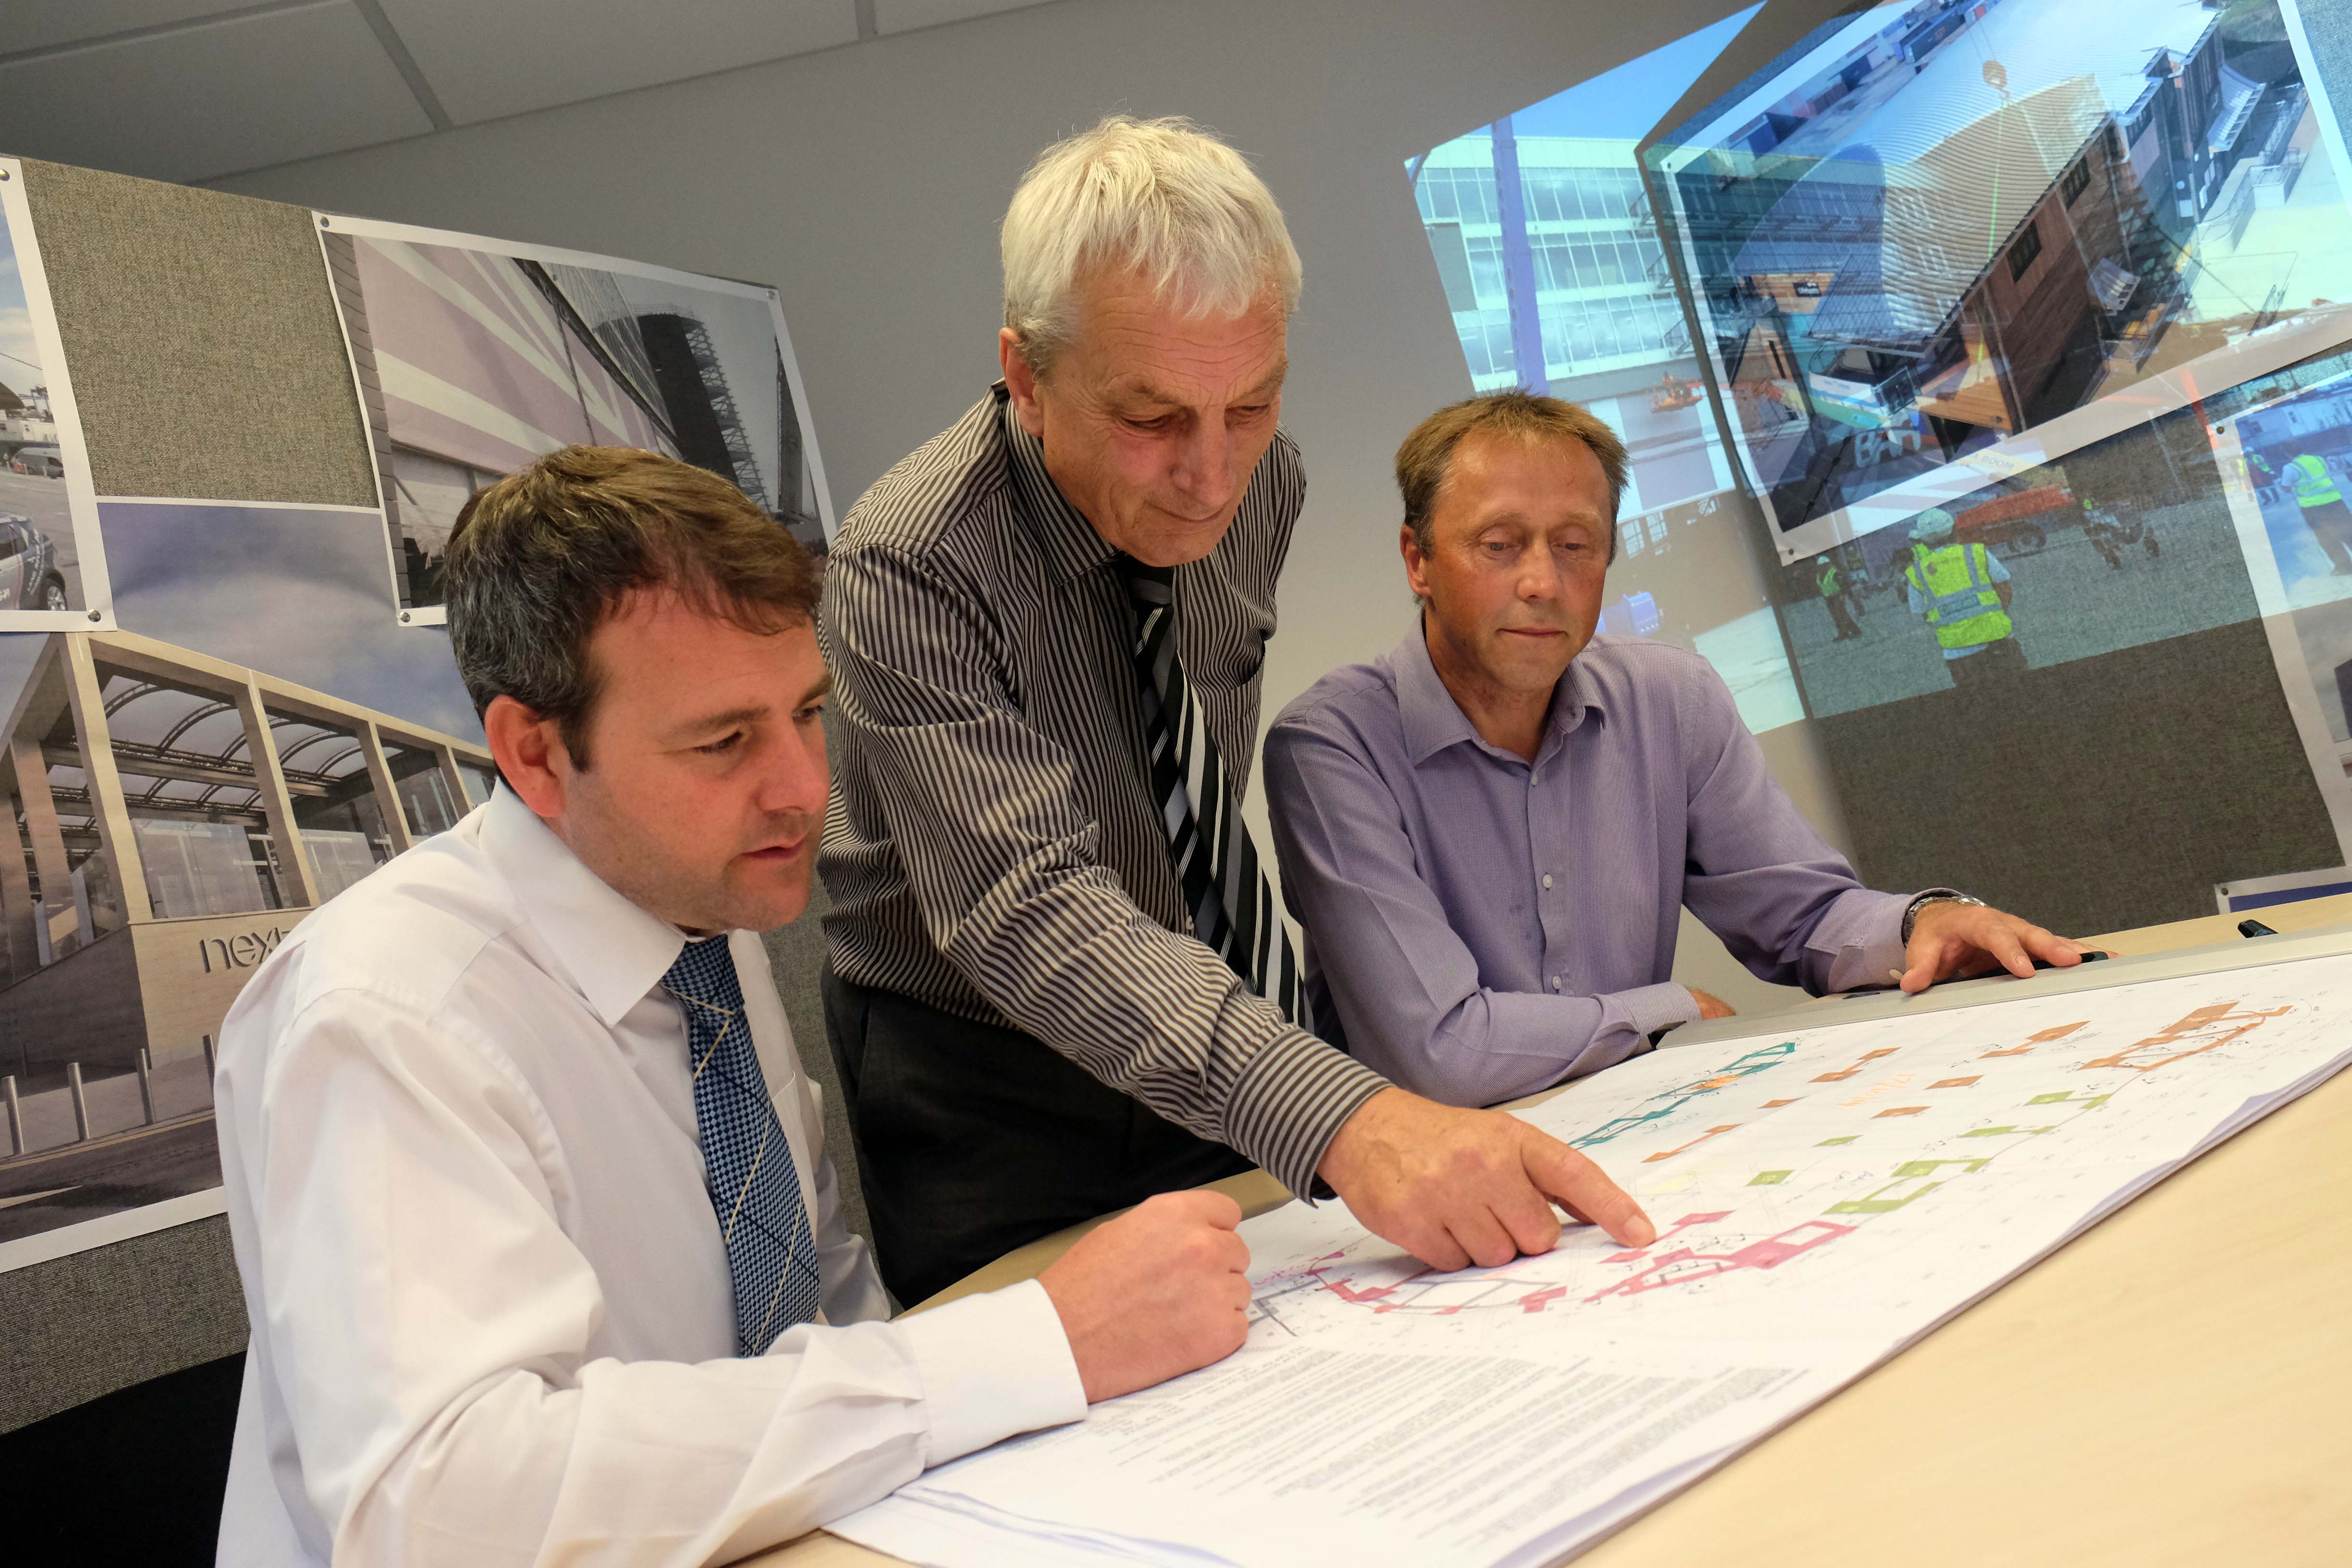 Tom Colbourne, of TA Colbourne, with Tim Bench, contracts manager, and Steve Reed, design manager.